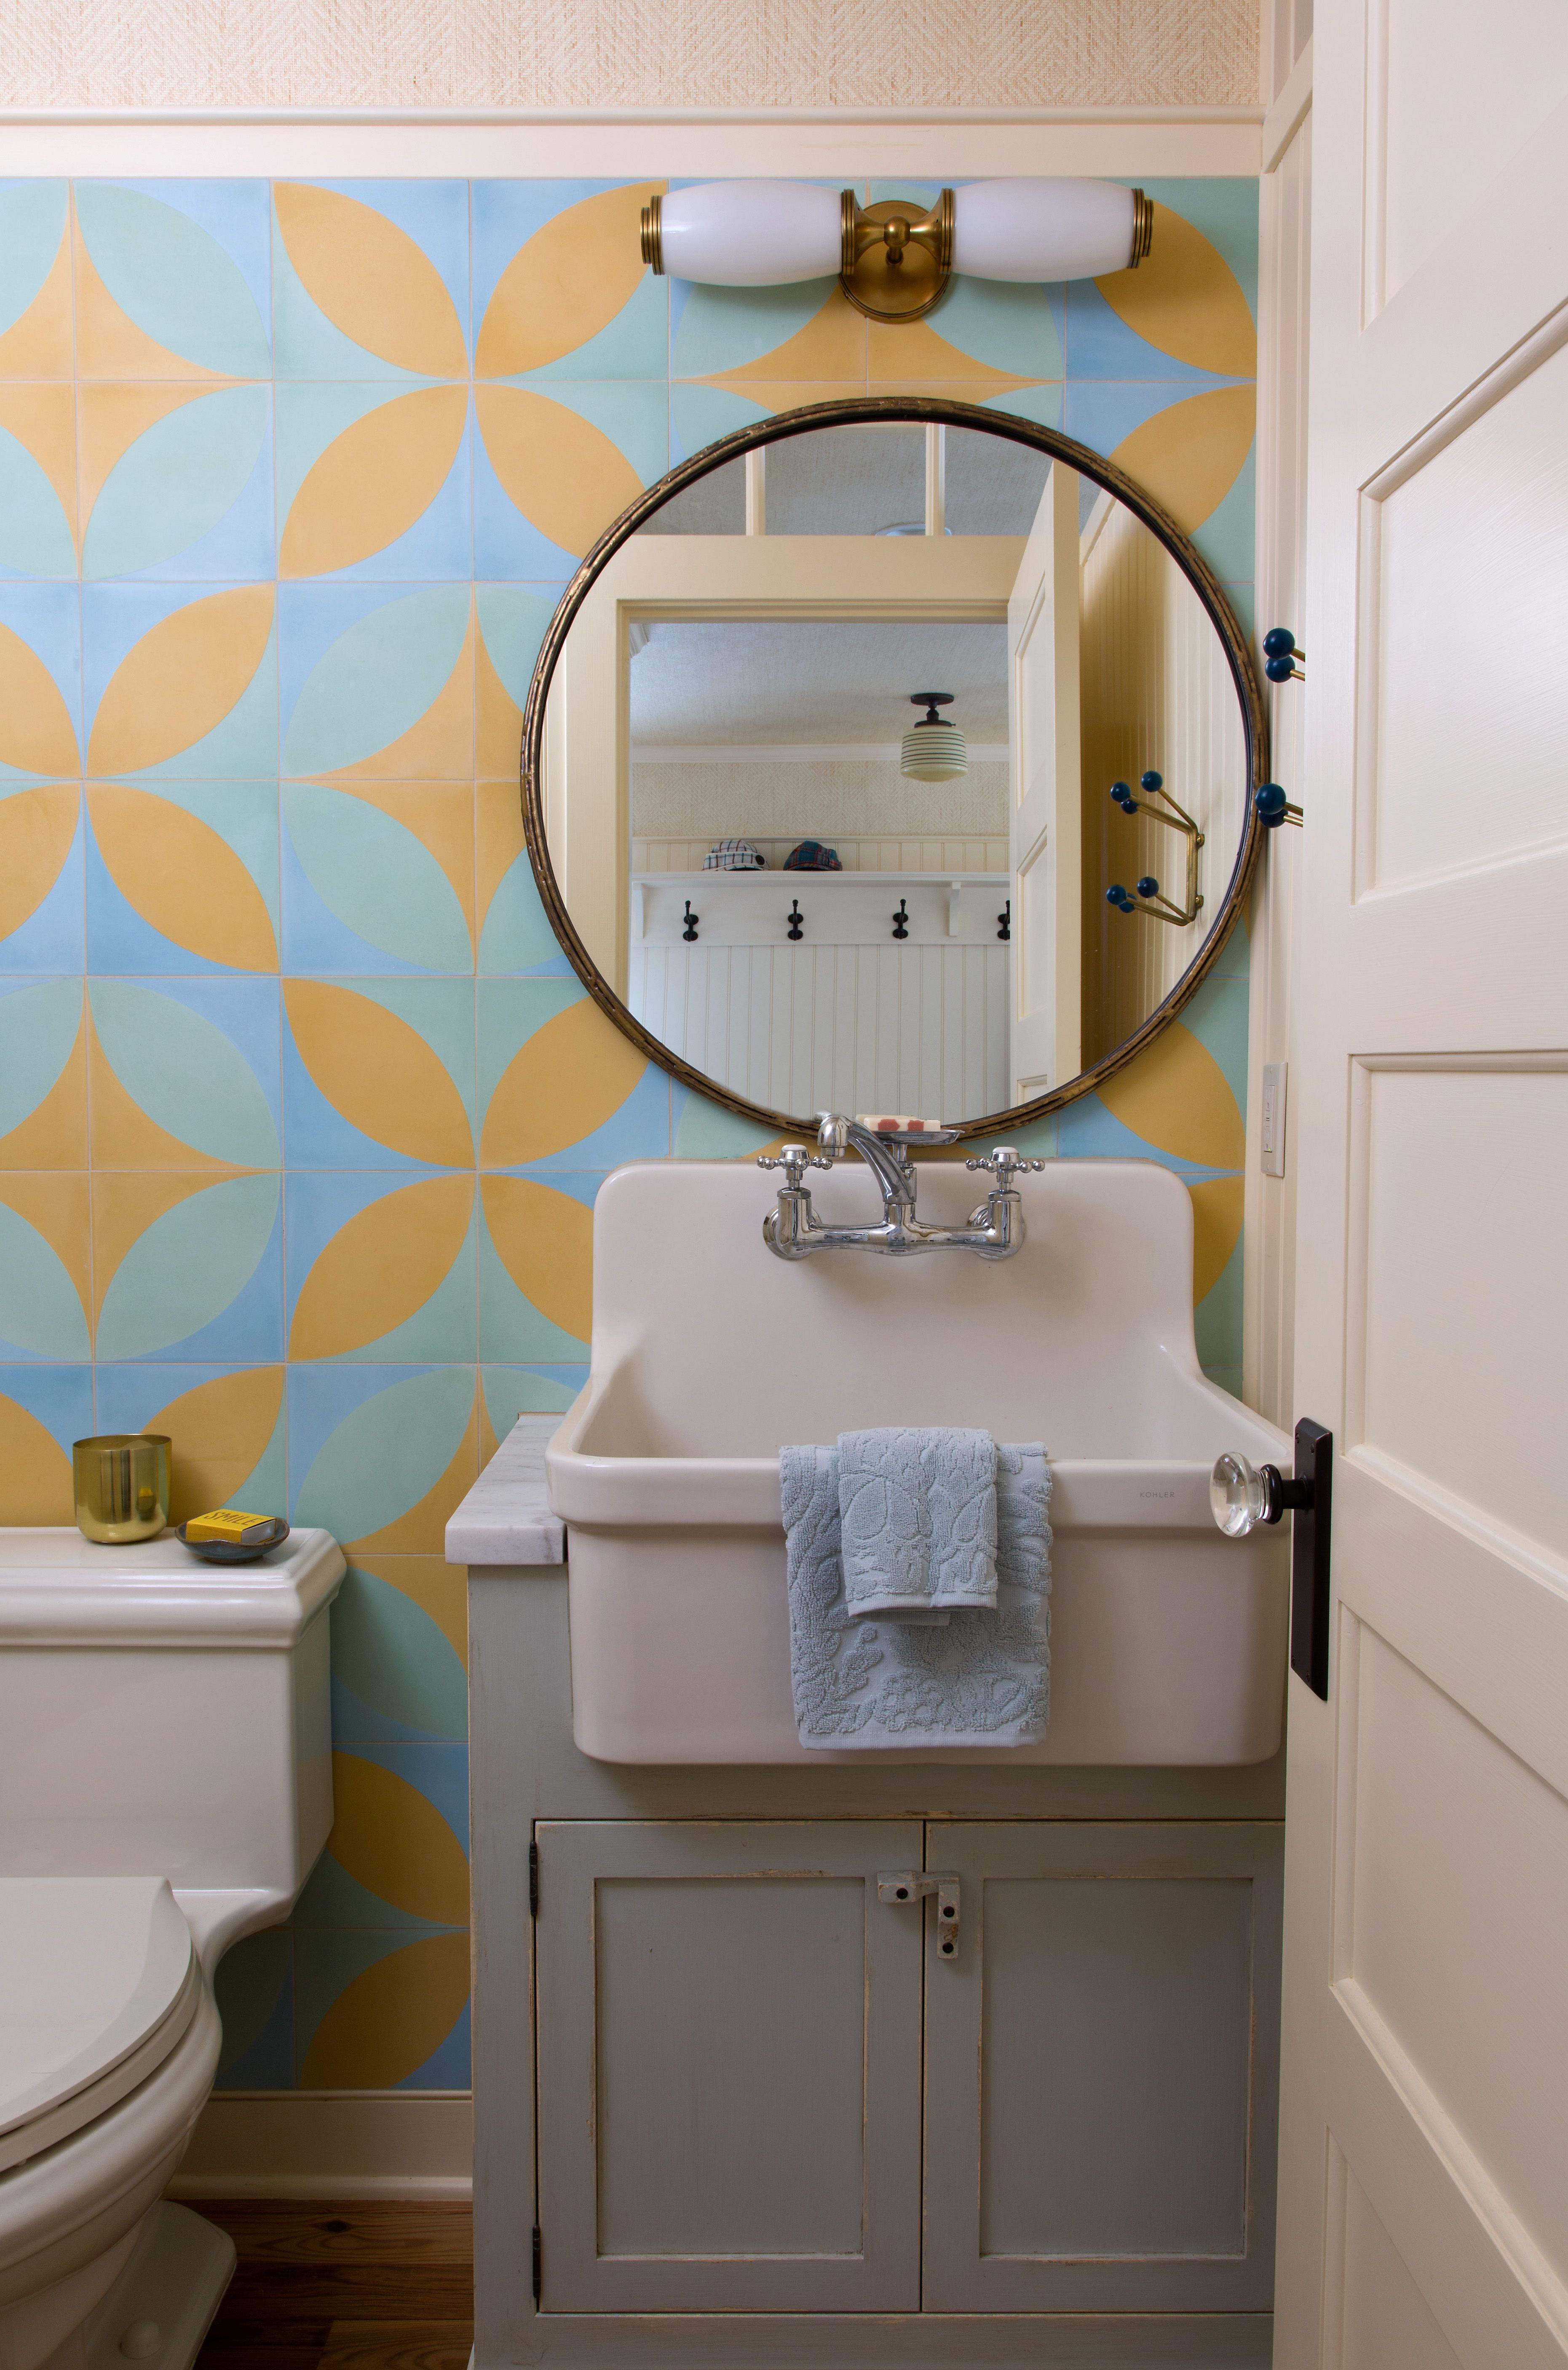 Eclectic Boho Mountain Home Powder Room by Andrea Schumacher